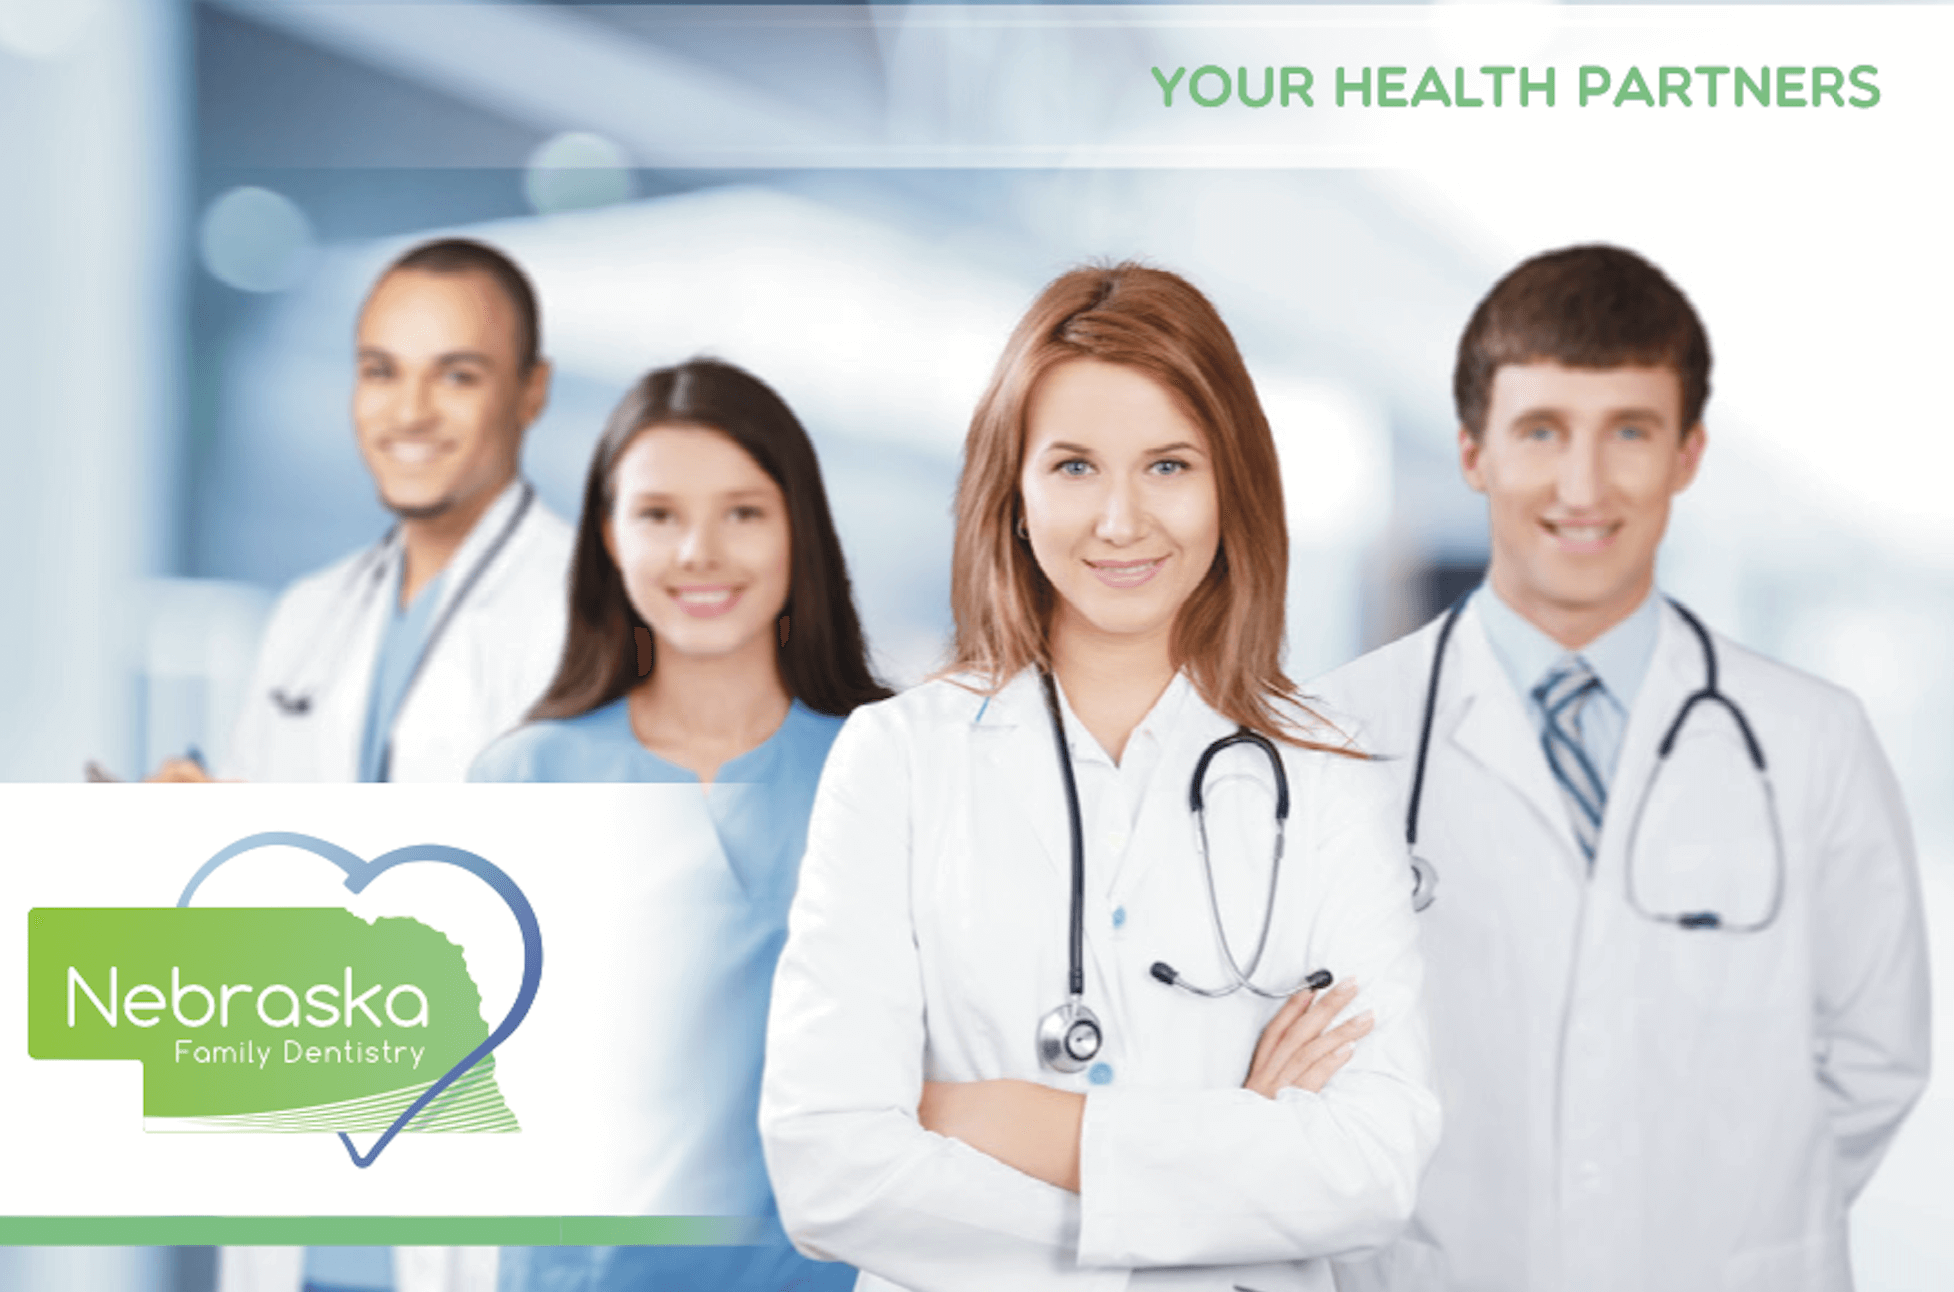 Schedule Your Appointment with Your Health Partners Nebraska Family Dentistry